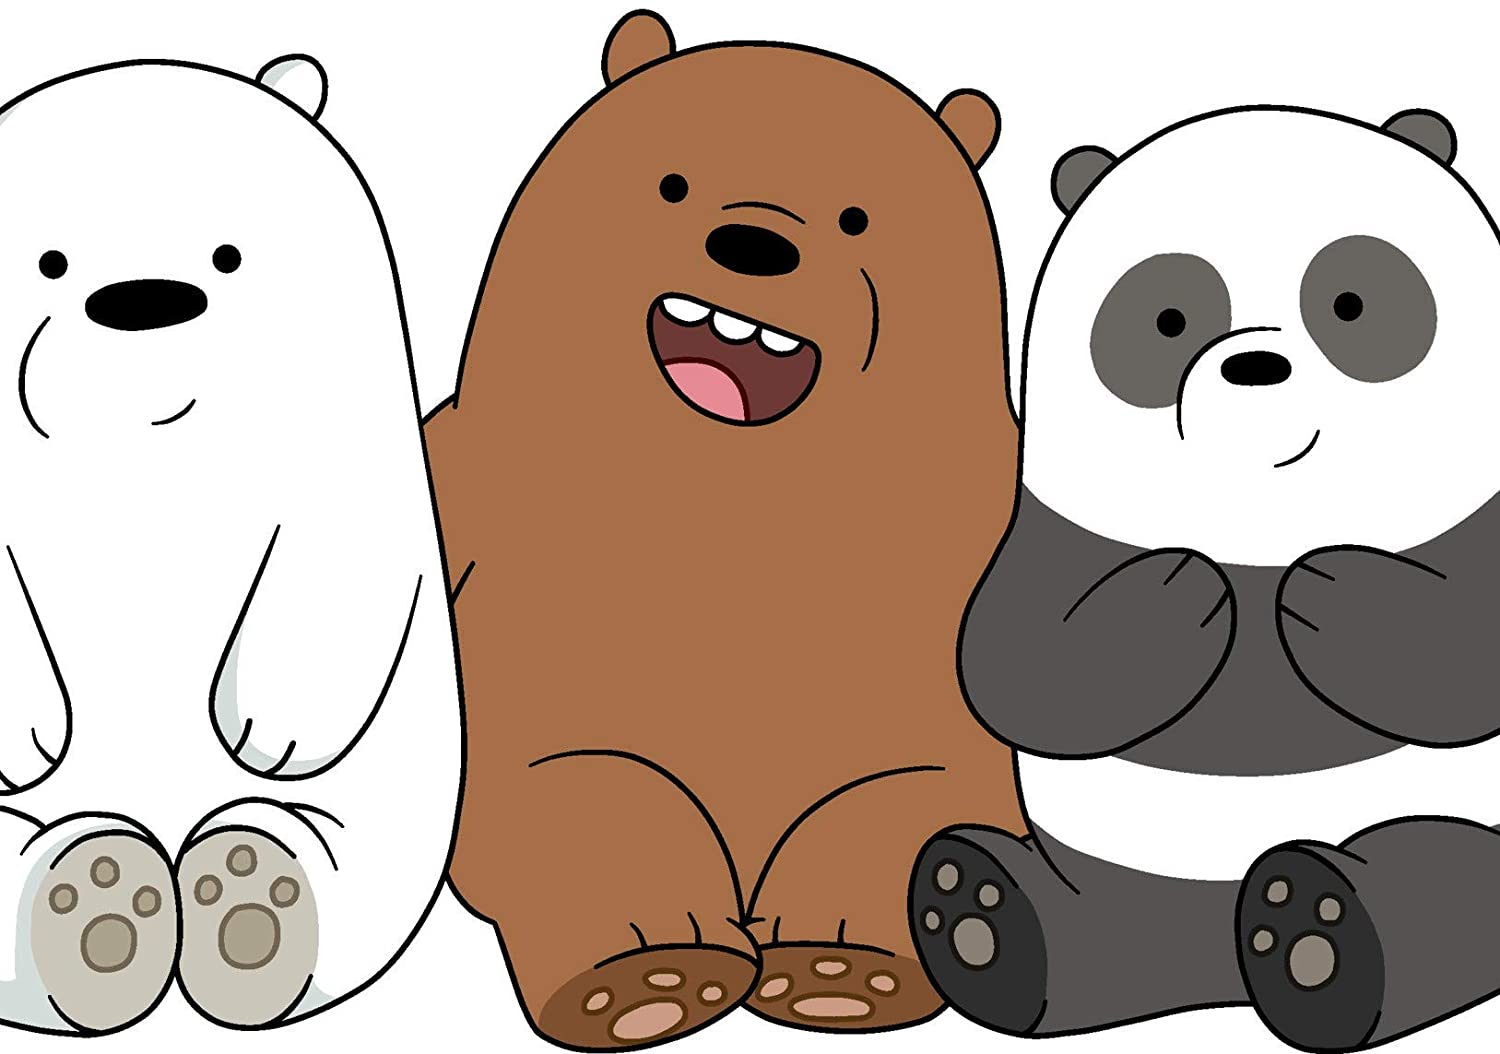 Funny Bears Poster Cartoon Art Print We Bare Bears Artwork No Frame Poster Modern Canvas Prints Wall Art Paintings Ready to Hang Home Decorations Watercolor Poster Picture